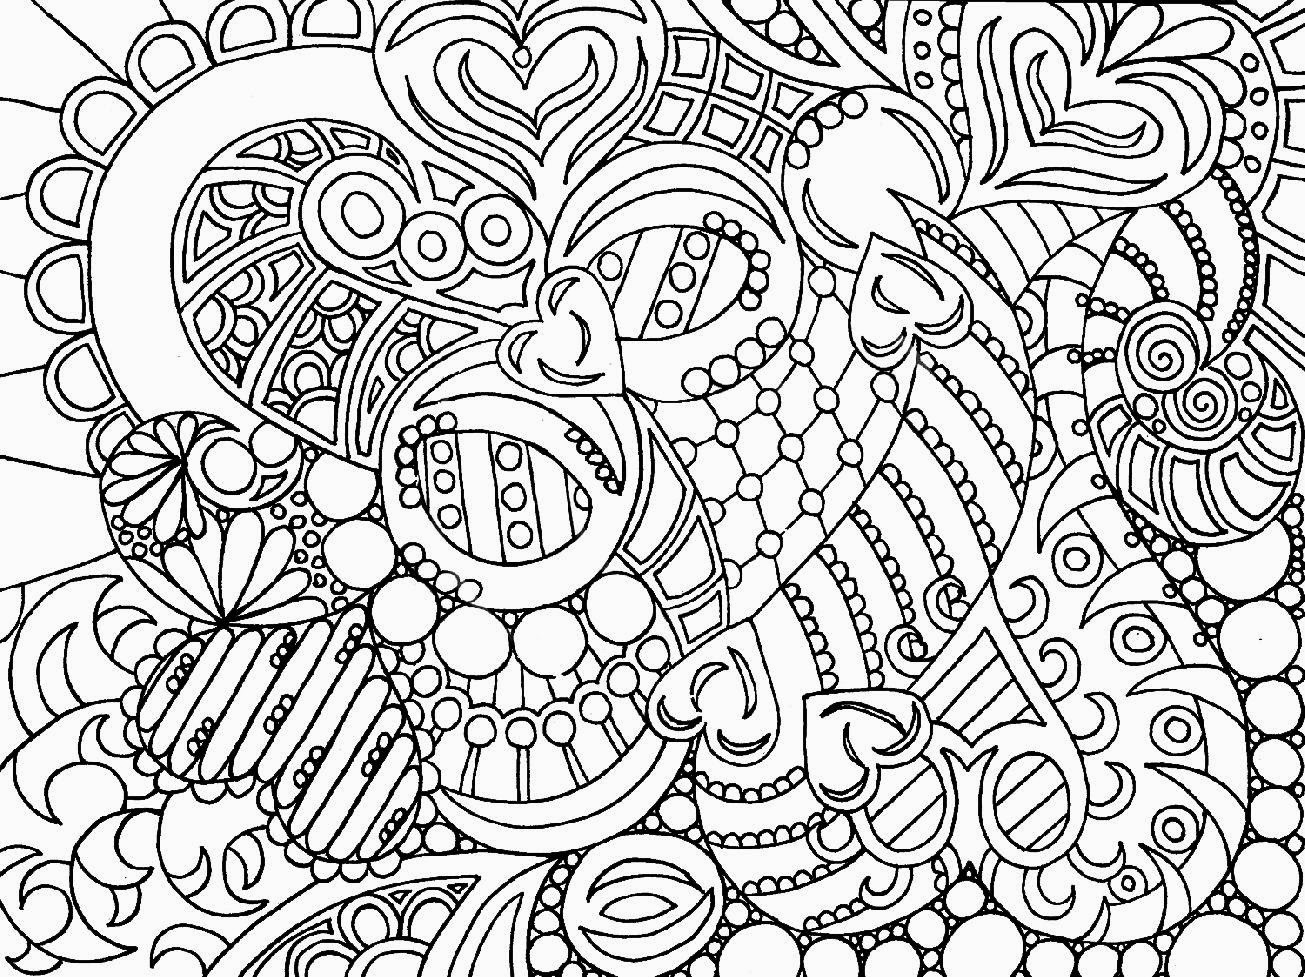 Adult coloring sheets free coloring sheet for Coloring pages online